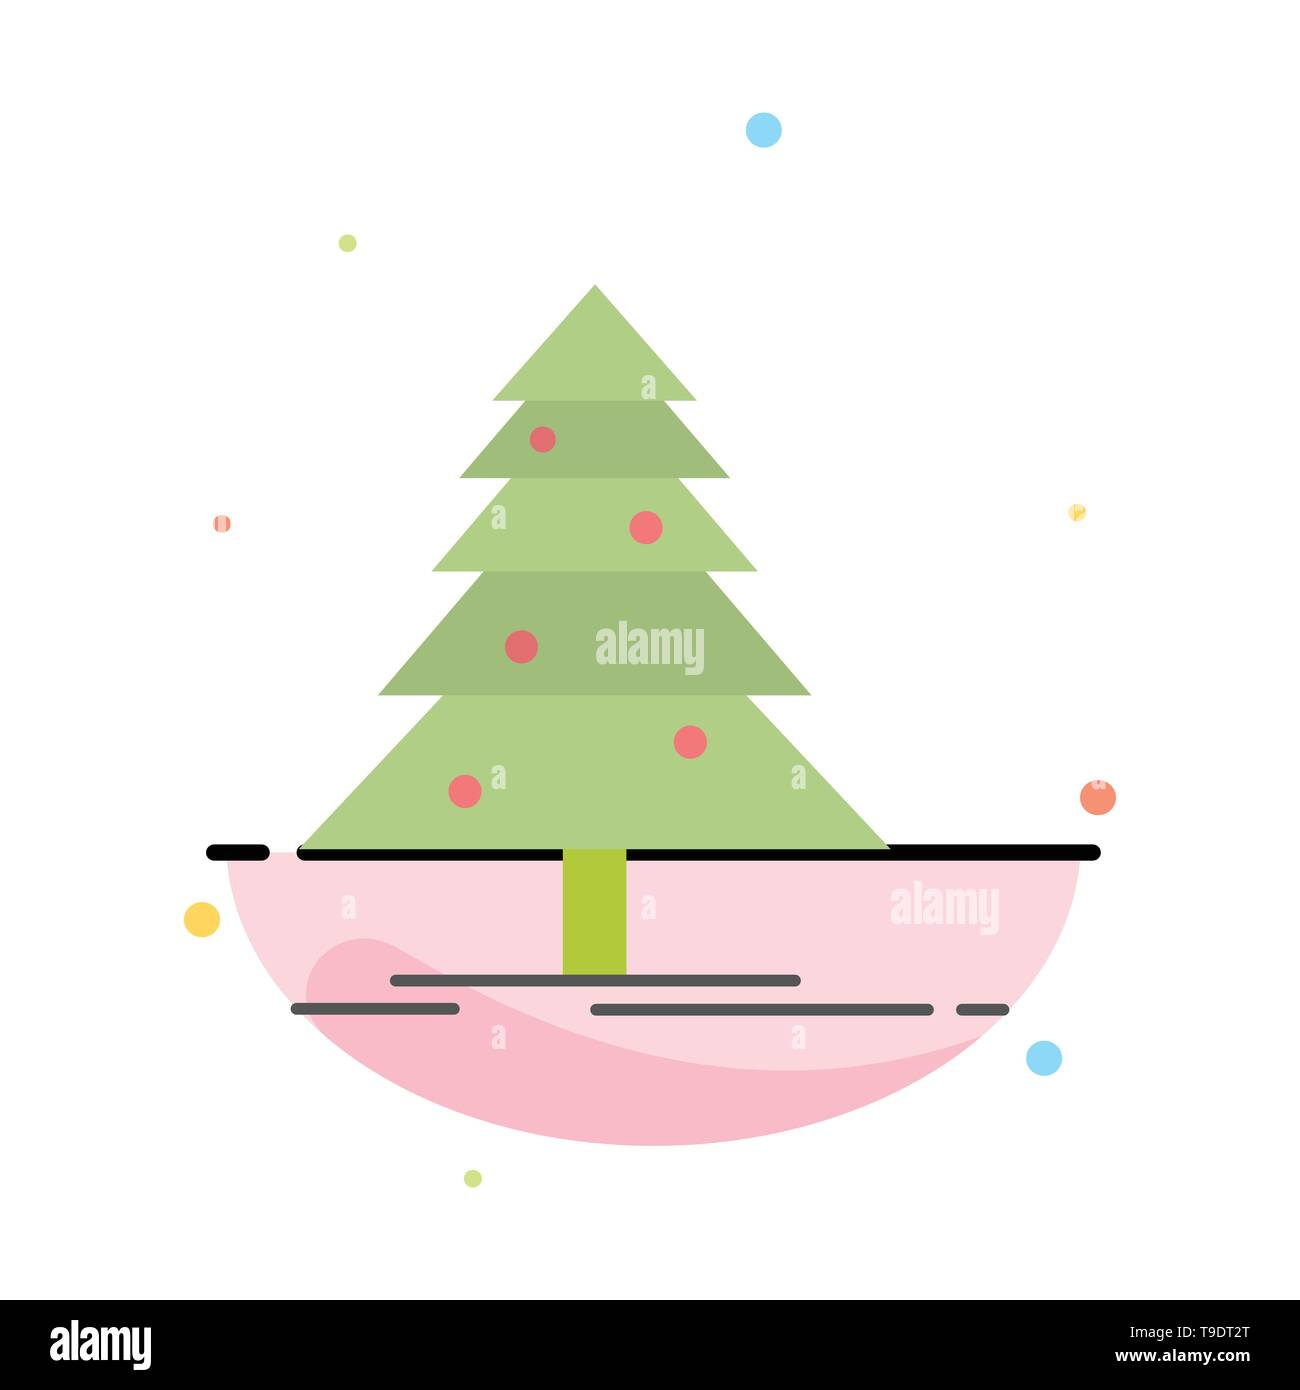 Tree, Forest, Christmas, XMas Abstract Flat Color Icon Template - Stock Image